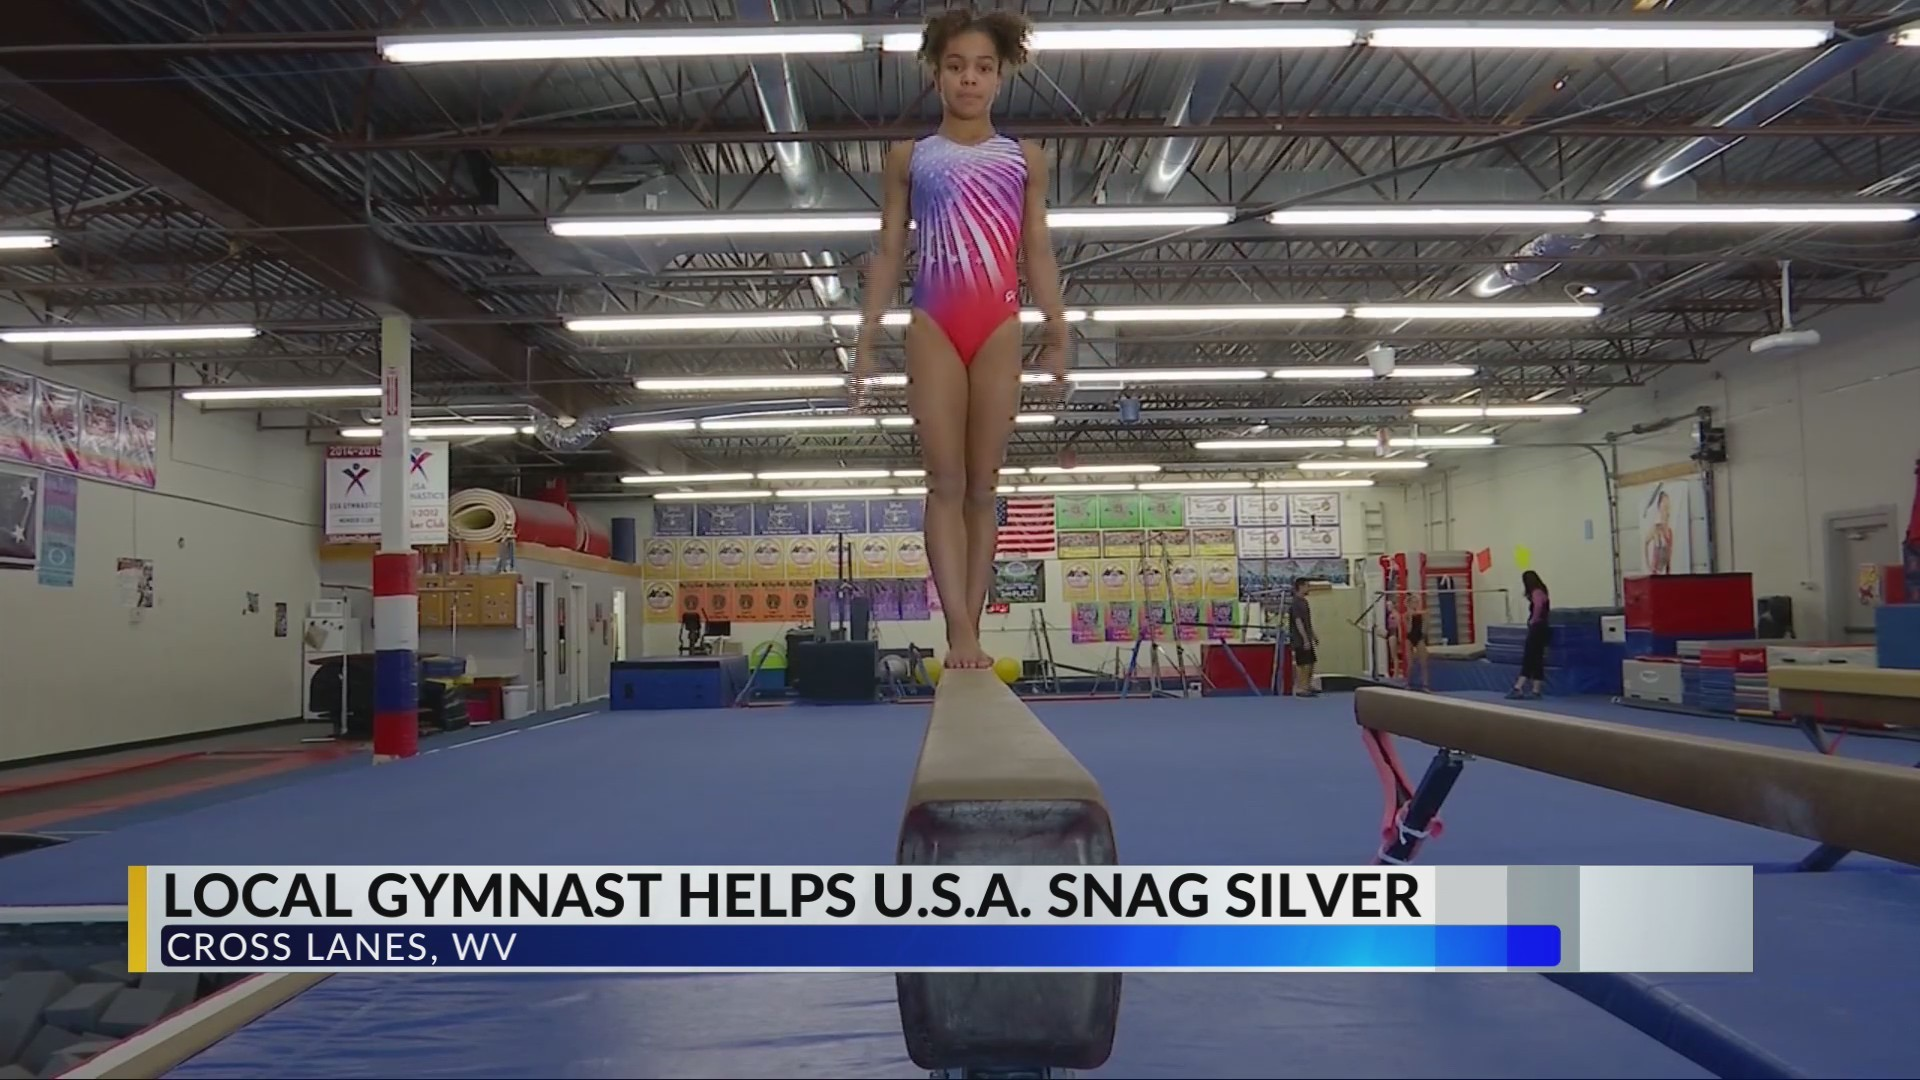 Local Gymnast Helps Team U.S.A. Snag Silver